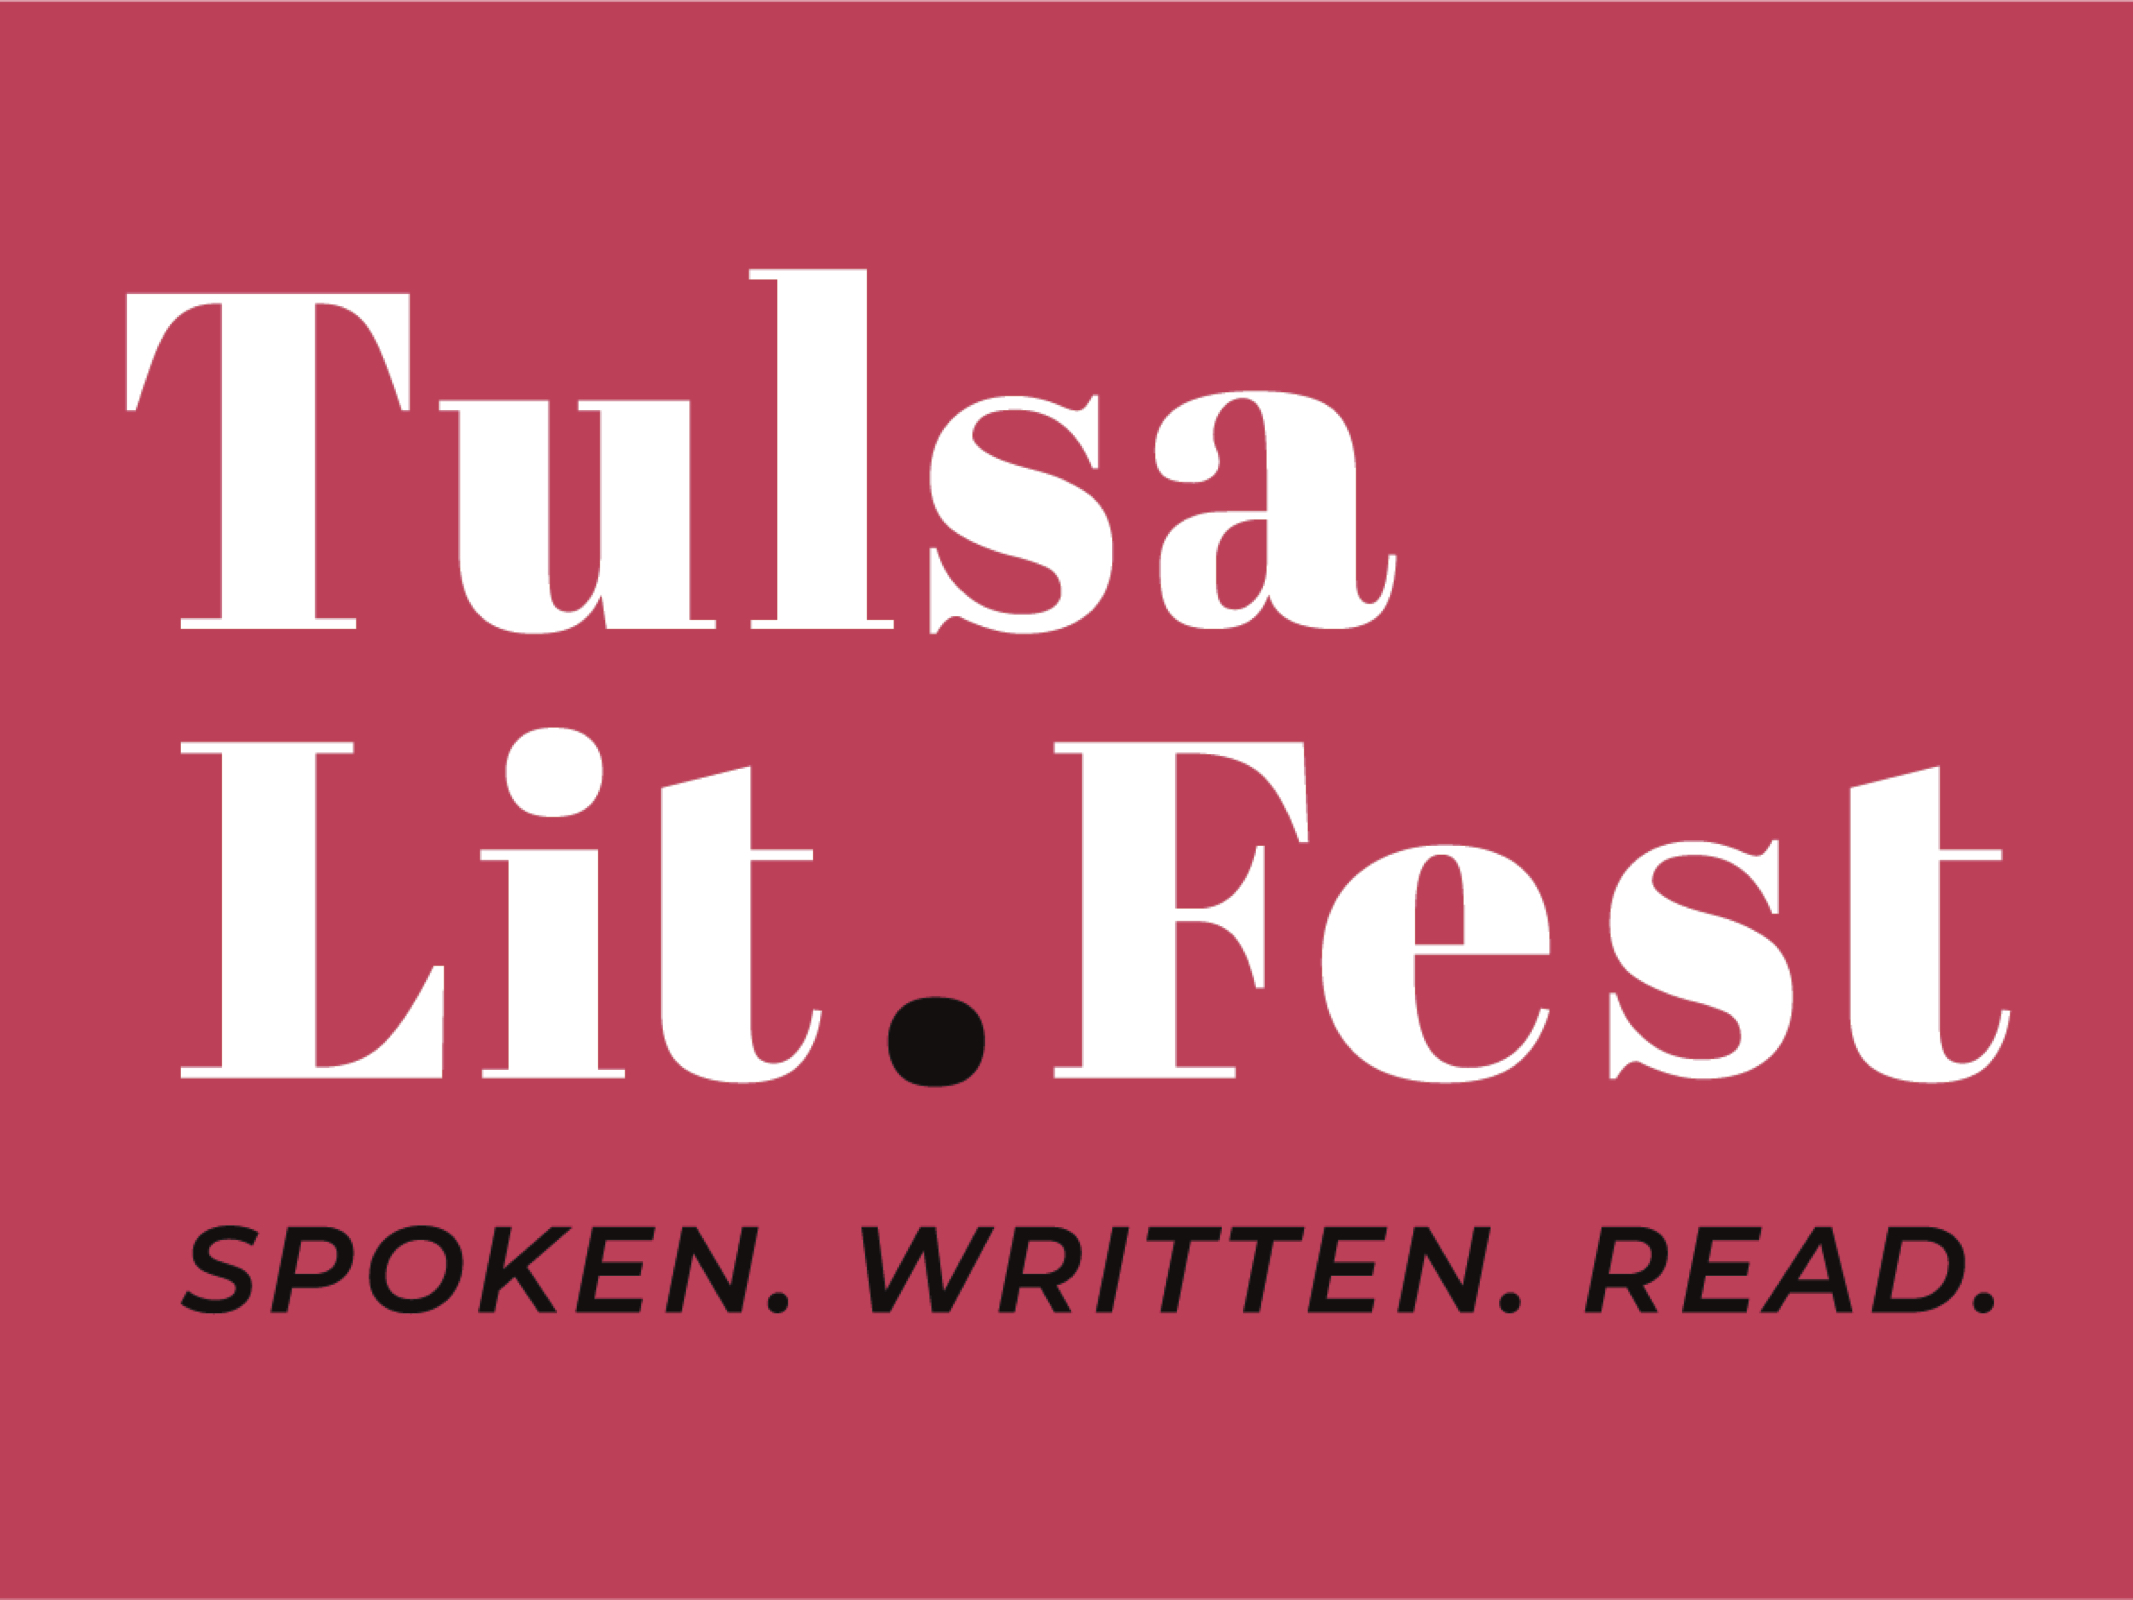 Tulsa LitFest | Spoken. Written. Read.